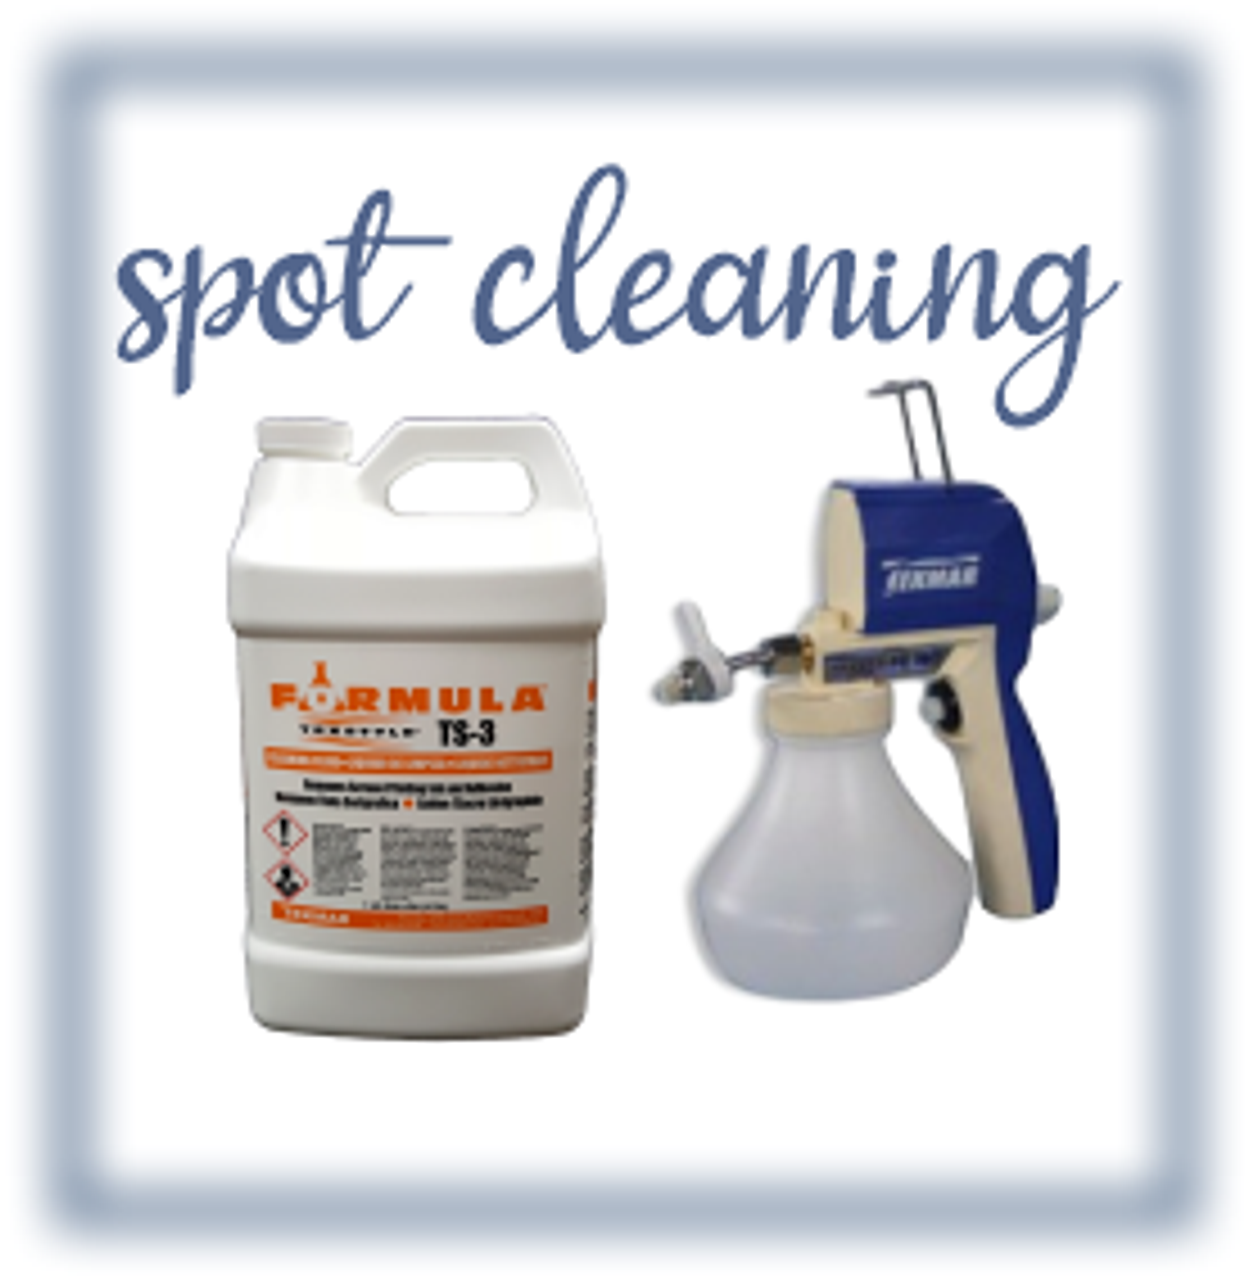 Spot Cleaning Chemicals & Equipment